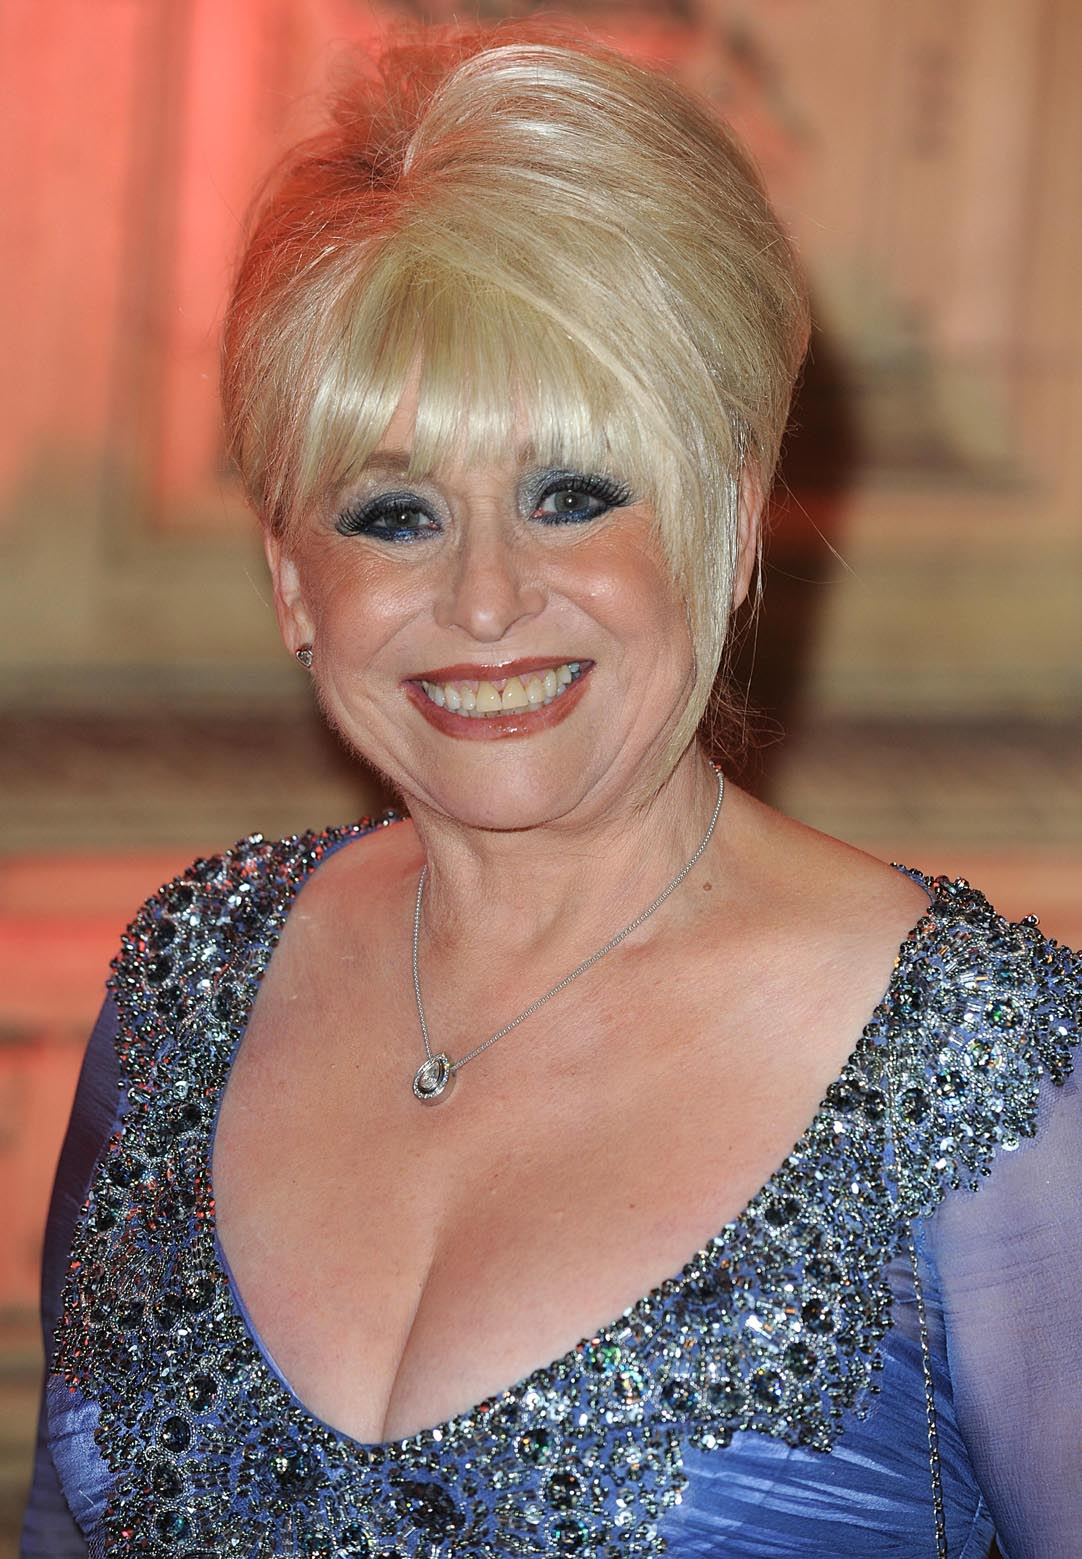 No bedroom scenes for Peggy, says Barbara Windsor